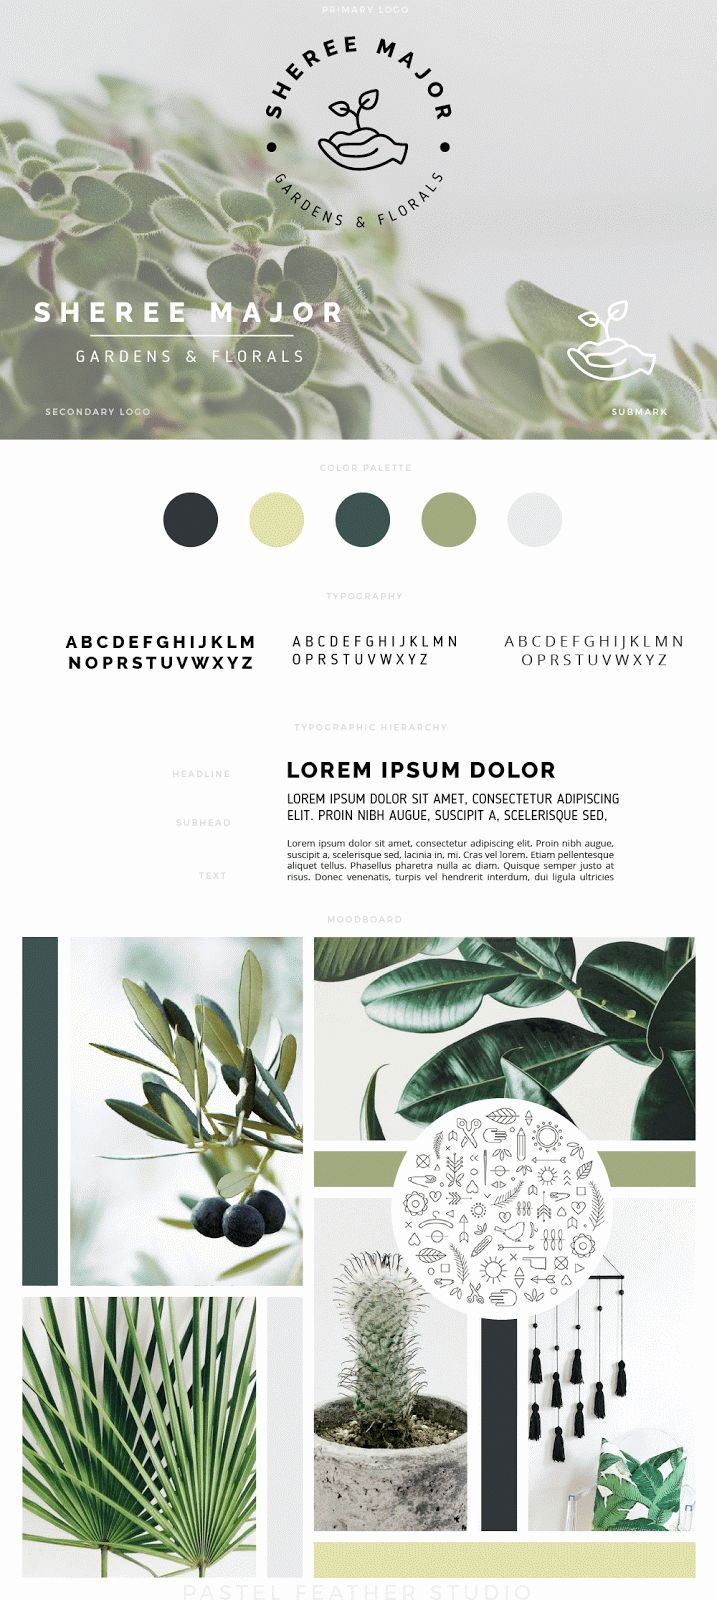 DESIGN WORK - Custom branding service Pastel Feather Studio